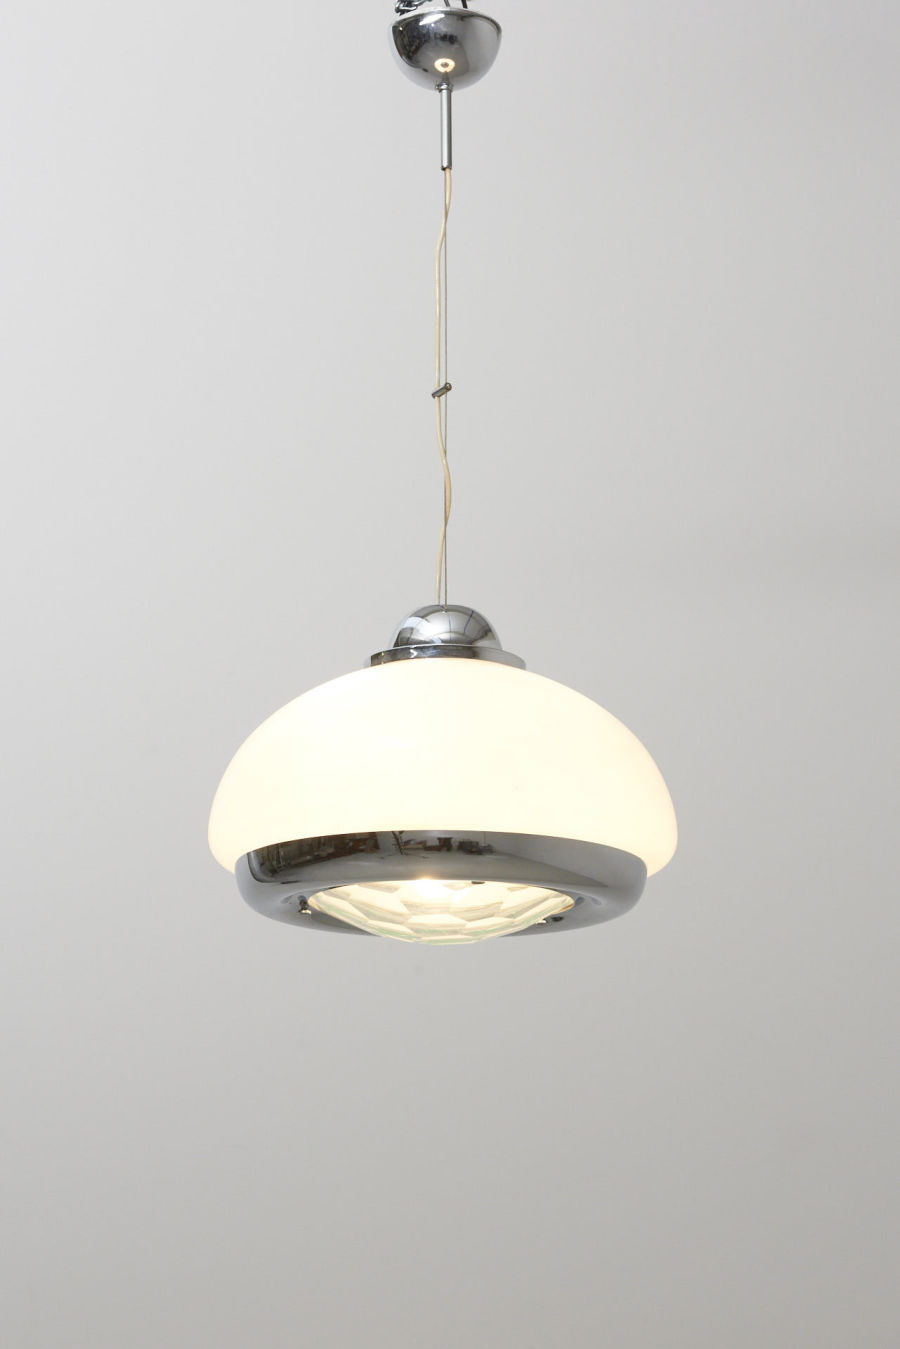 modestfurniture-vintage-2547-glass-pendant-max-ingrand-style01